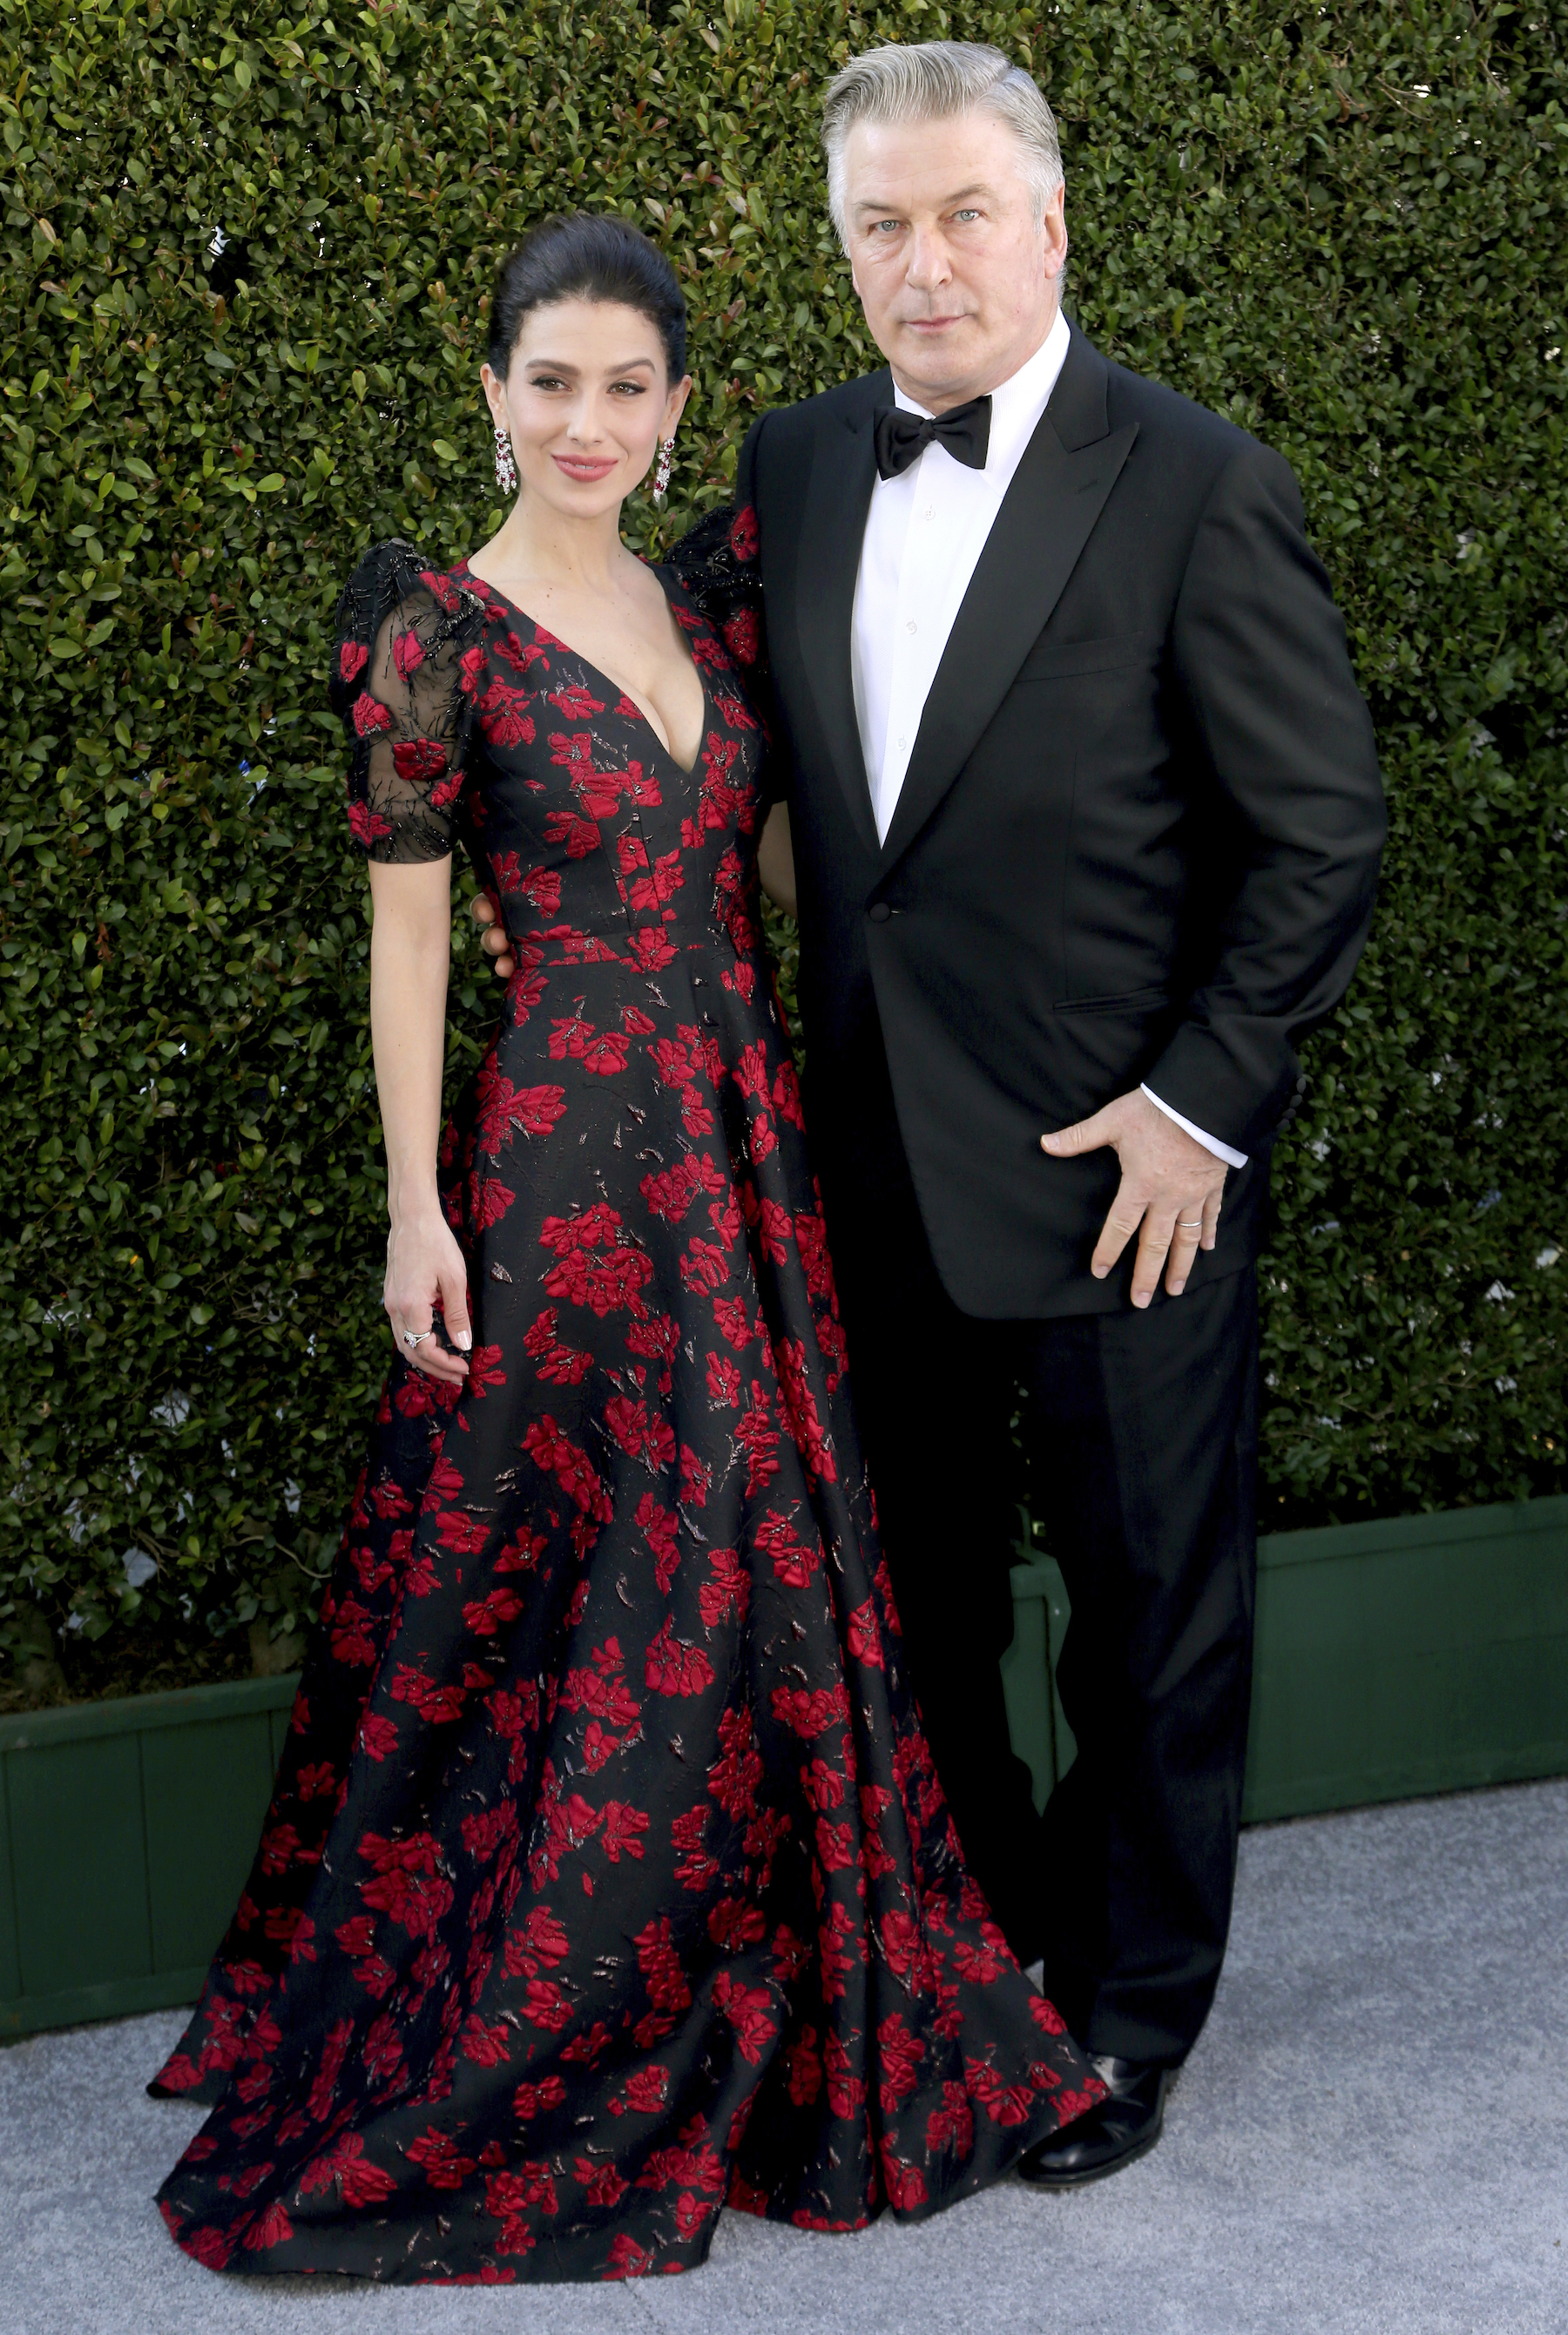 "<div class=""meta image-caption""><div class=""origin-logo origin-image ap""><span>AP</span></div><span class=""caption-text"">Alec Baldwin, right, and Hilaria Baldwin arrive at the 25th annual Screen Actors Guild Awards at the Shrine Auditorium & Expo Hall on Sunday, Jan. 27, 2019, in Los Angeles. (Willy Sanjuan/Invision/AP)</span></div>"